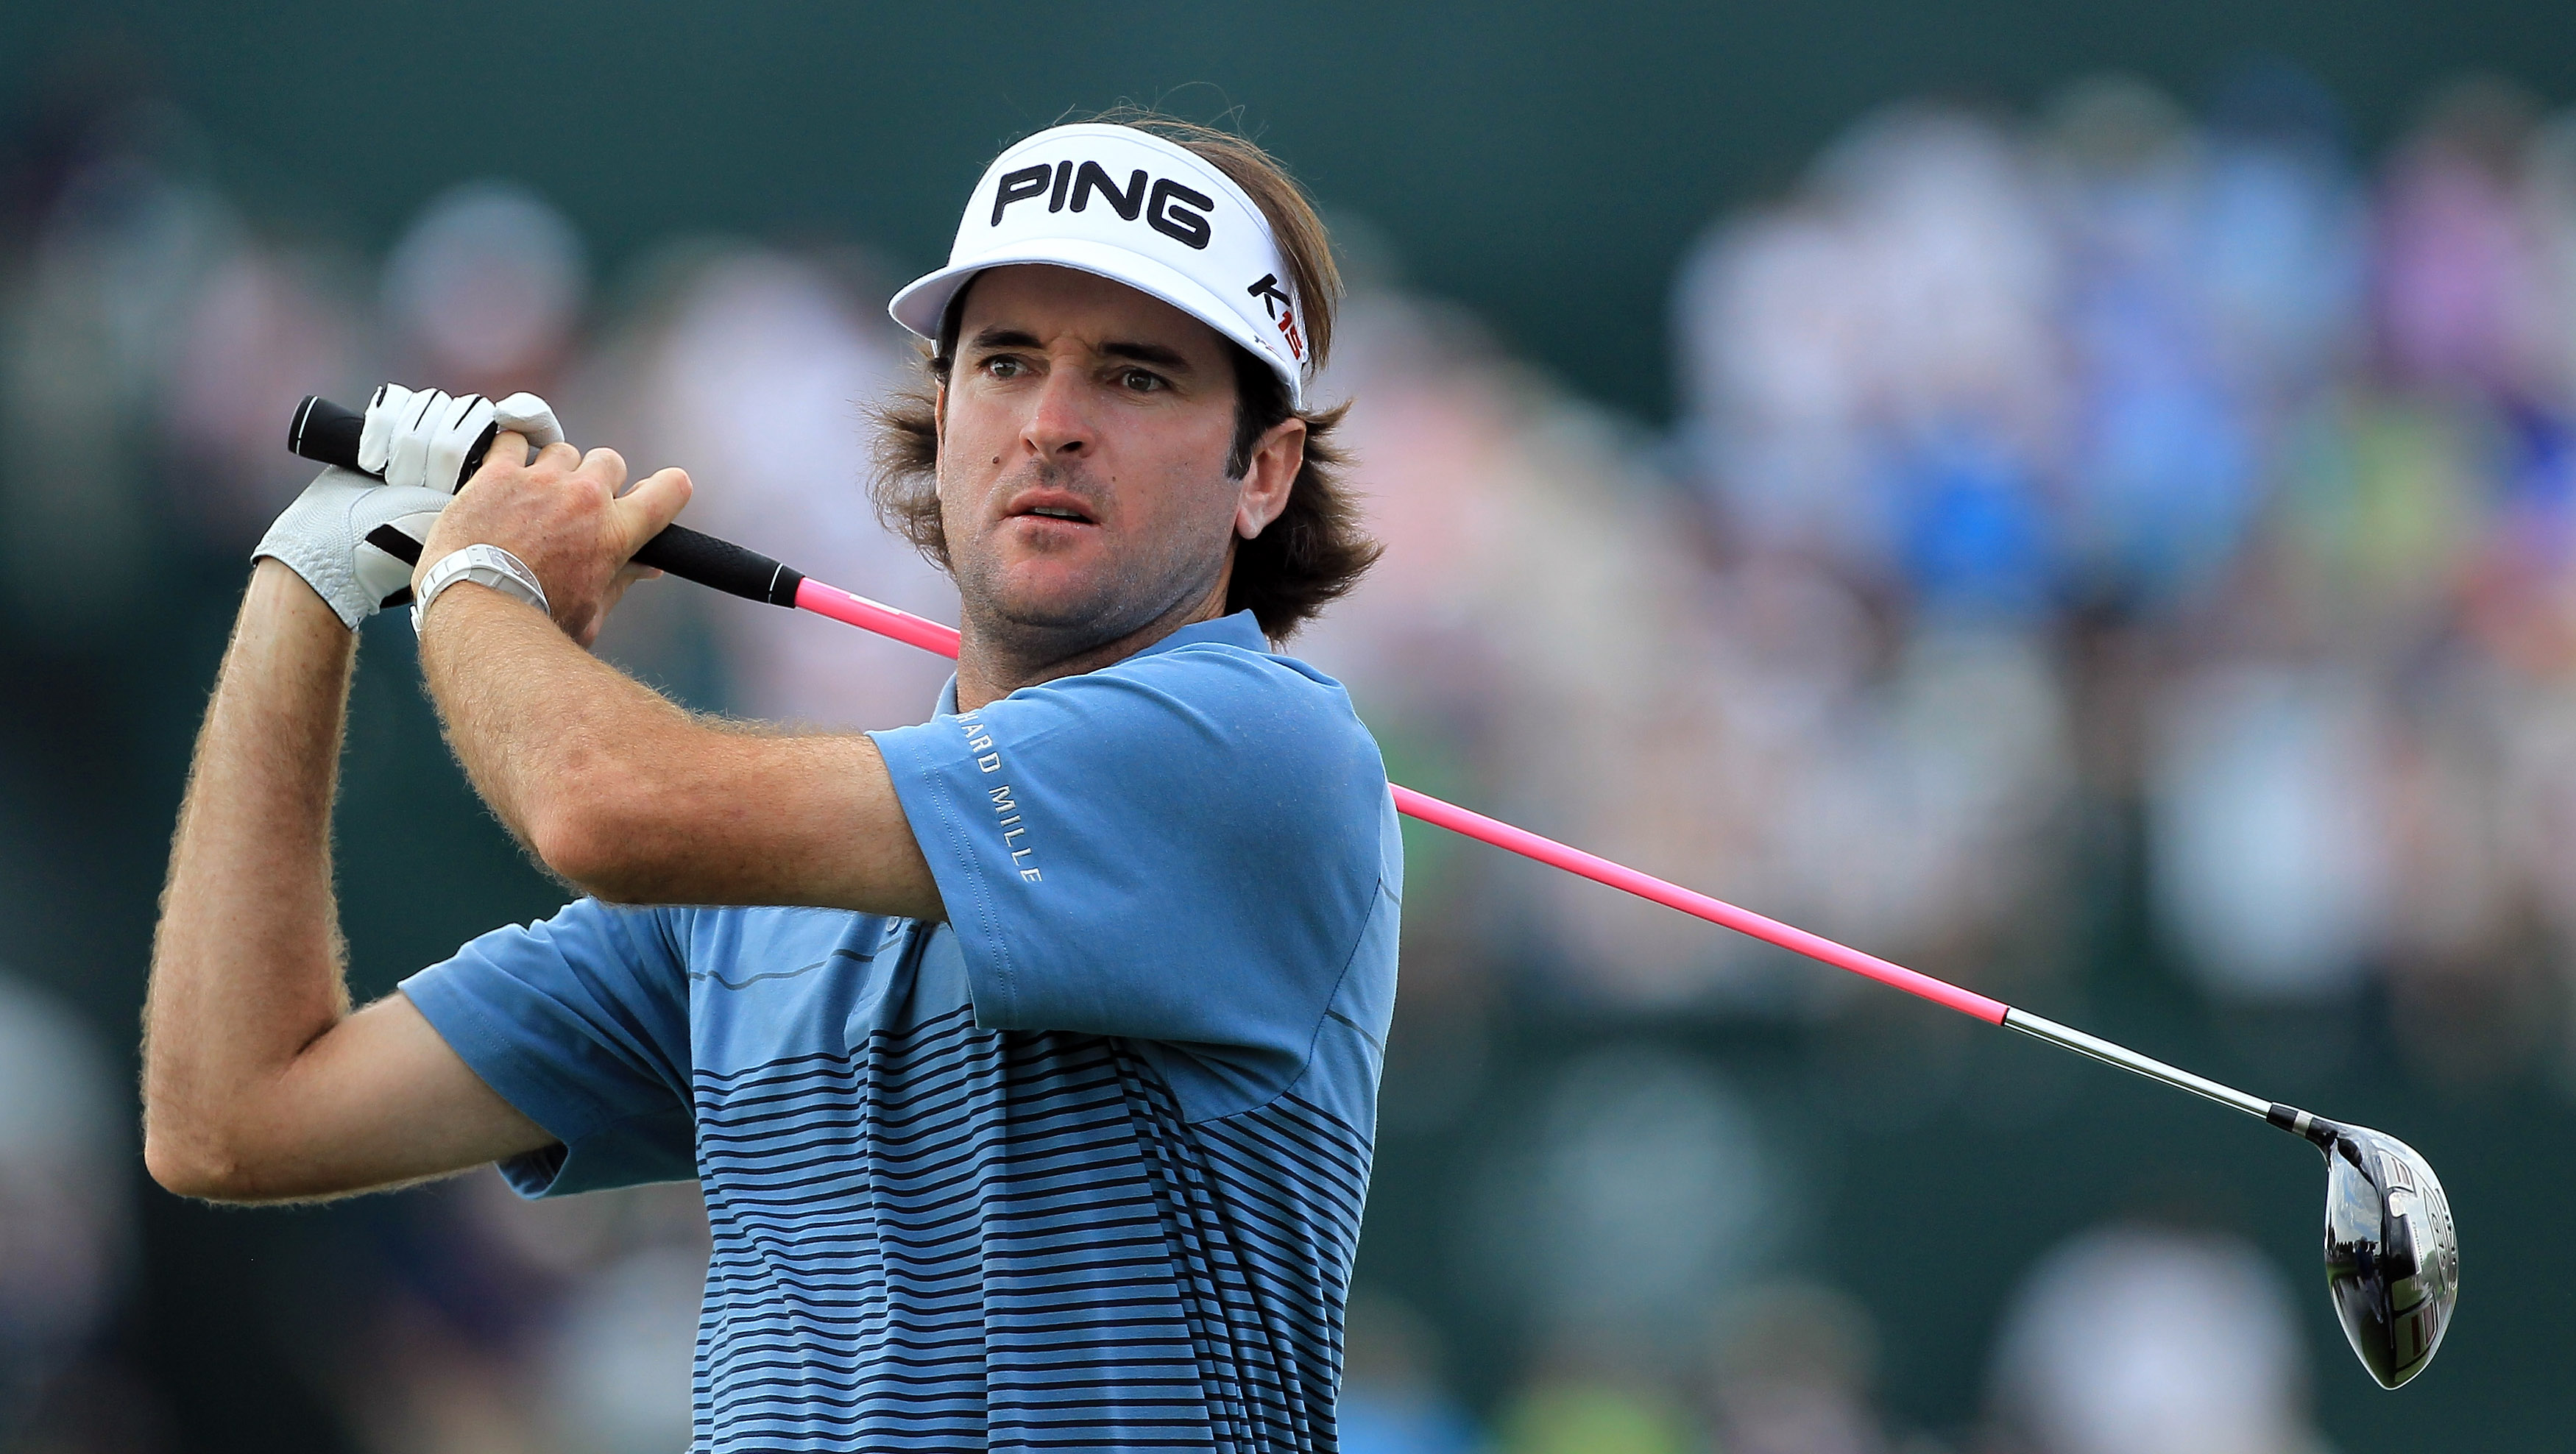 ORLANDO, FL - MARCH 26:  Bubba Watson plays hie tee shot at the 16th hole during the third round of the 2011 Arnold Palmer Invitational presented by Mastercard at the Bay Hill Lodge and Country Club on March 26, 2011 in Orlando, Florida.  (Photo by David